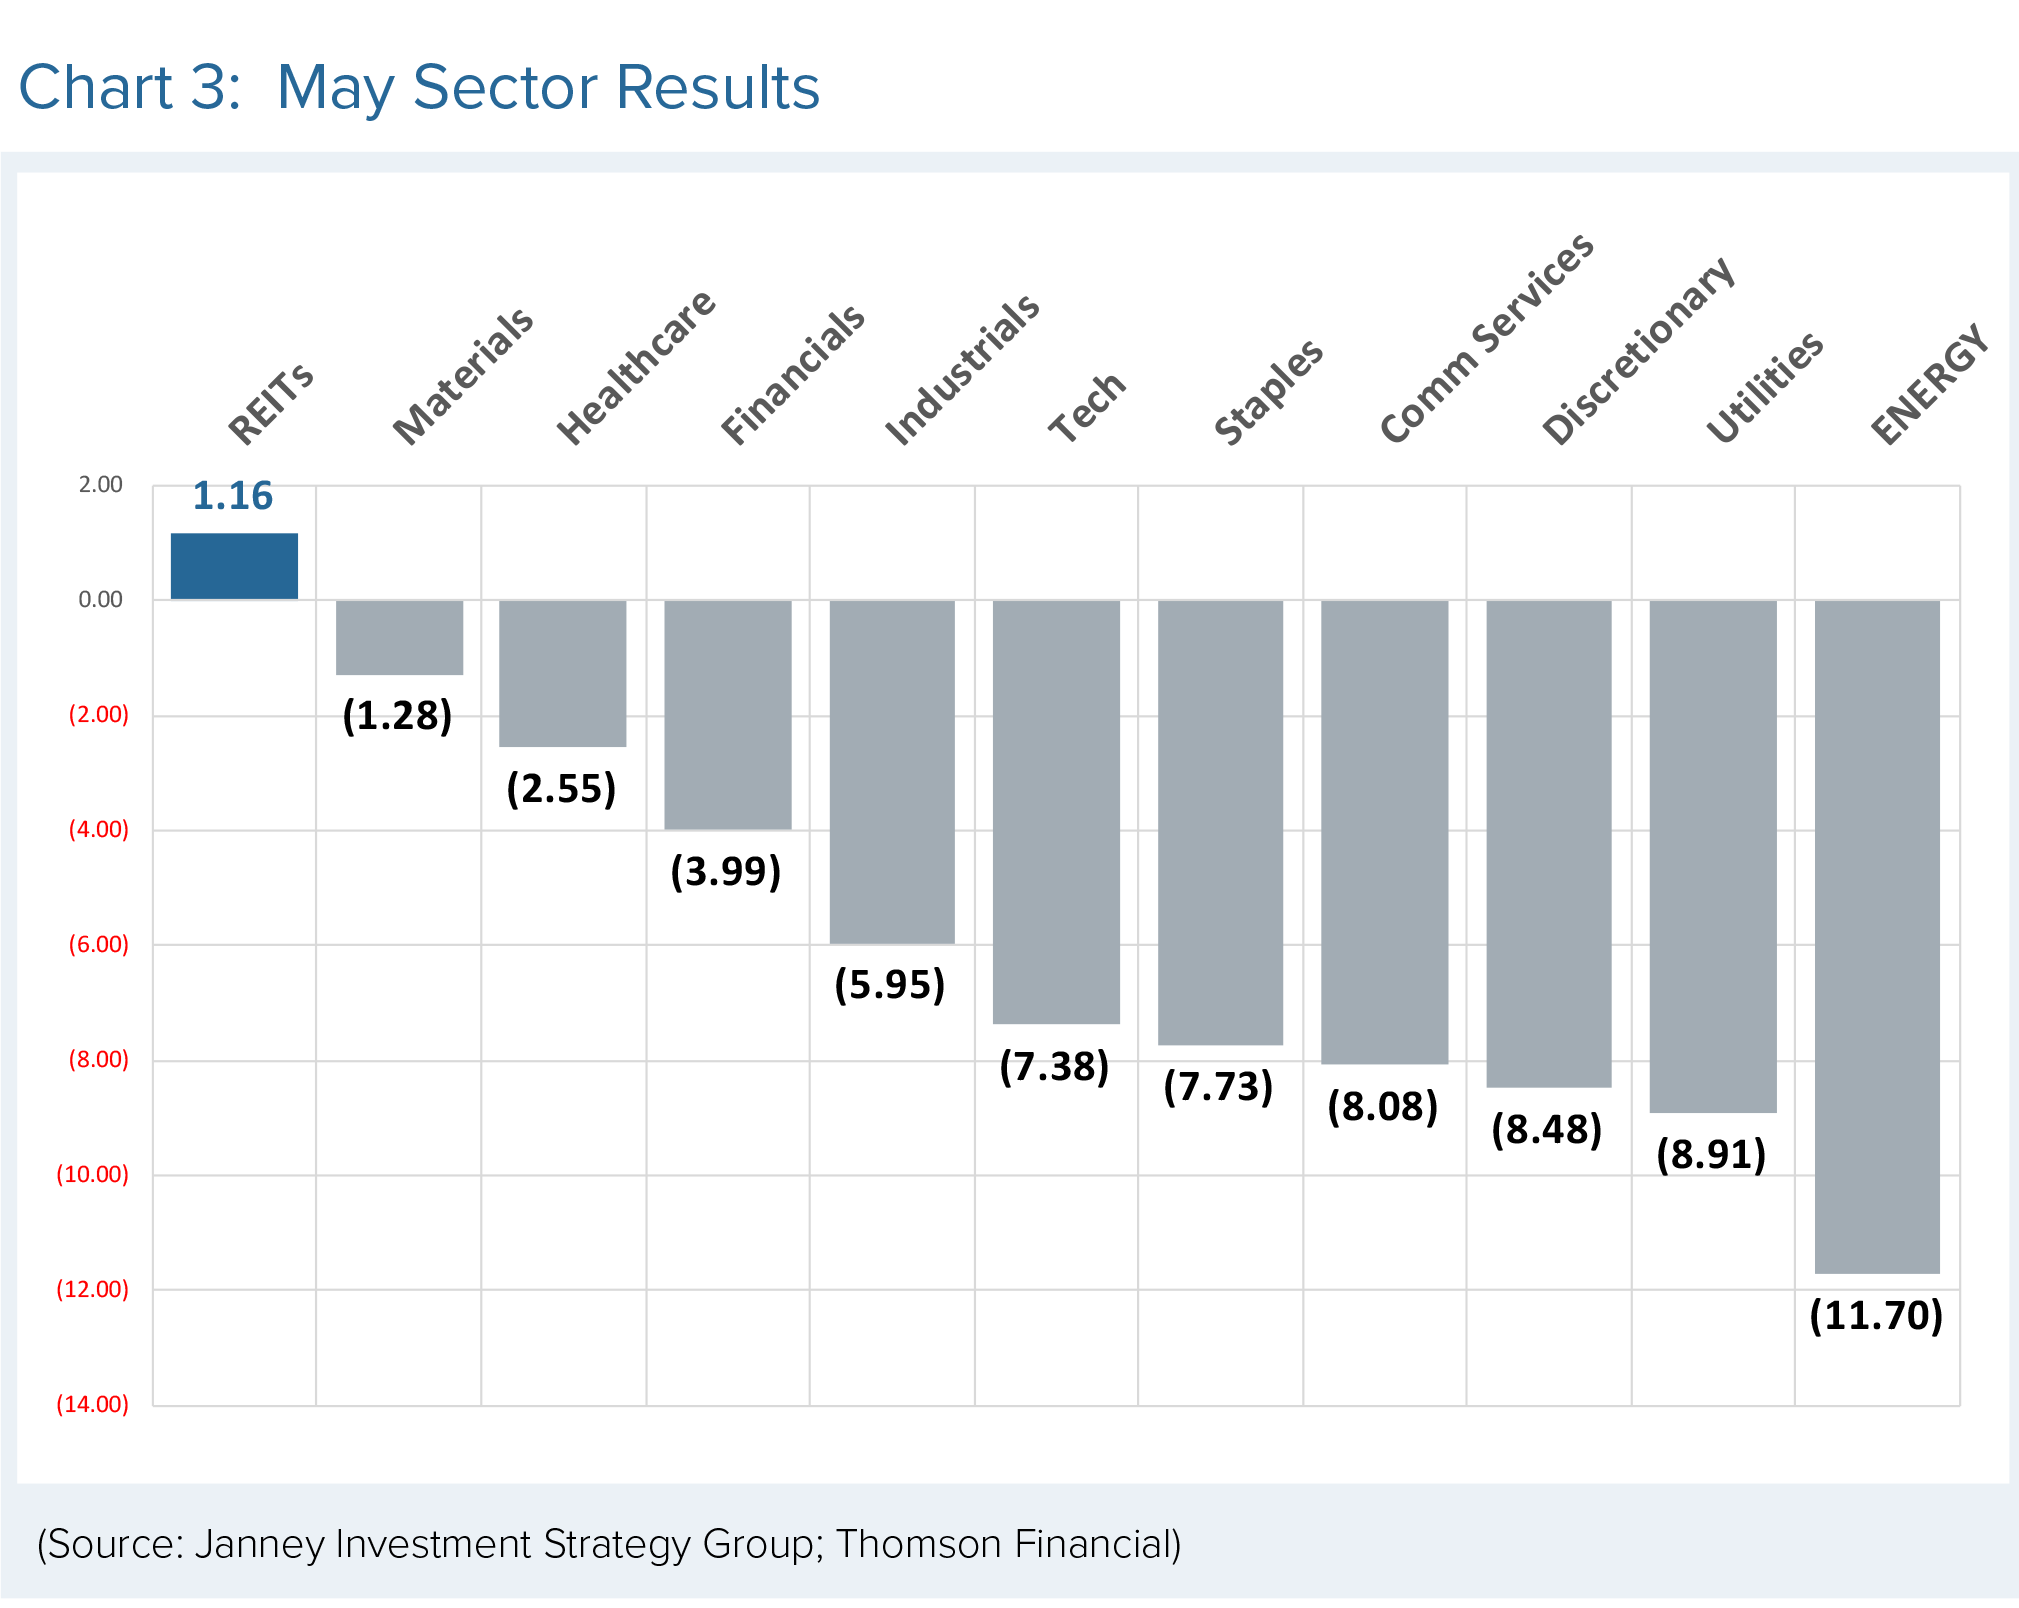 A bar chart displays May Sector Results